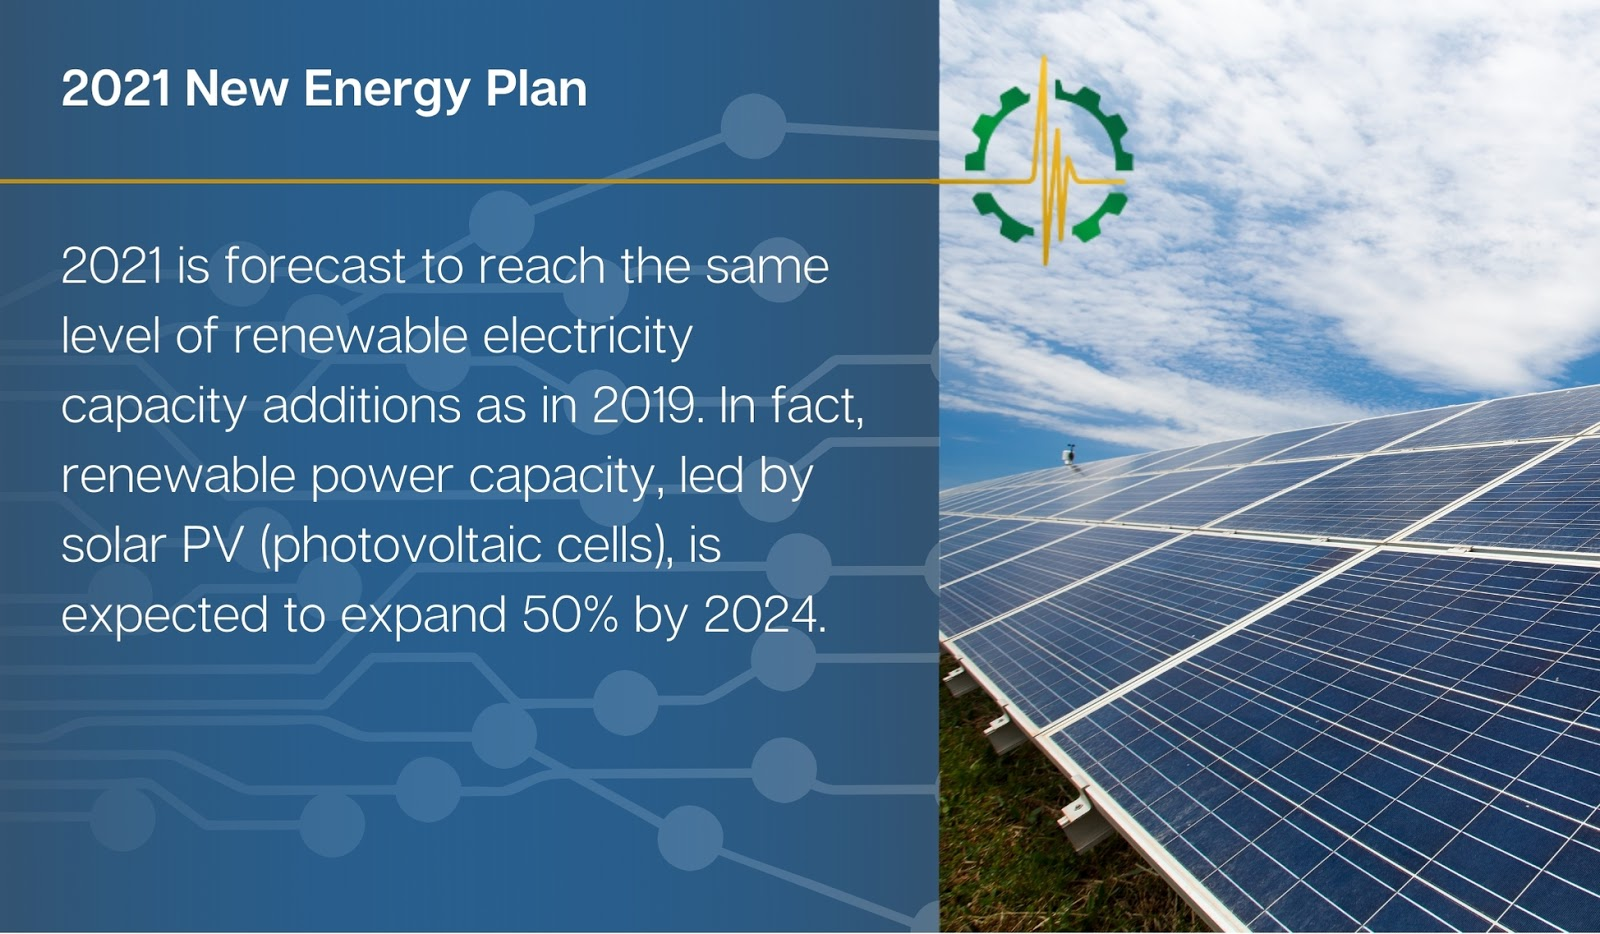 2021 is forecast to reach the same level of renewable electricity capacity additions as in 2019